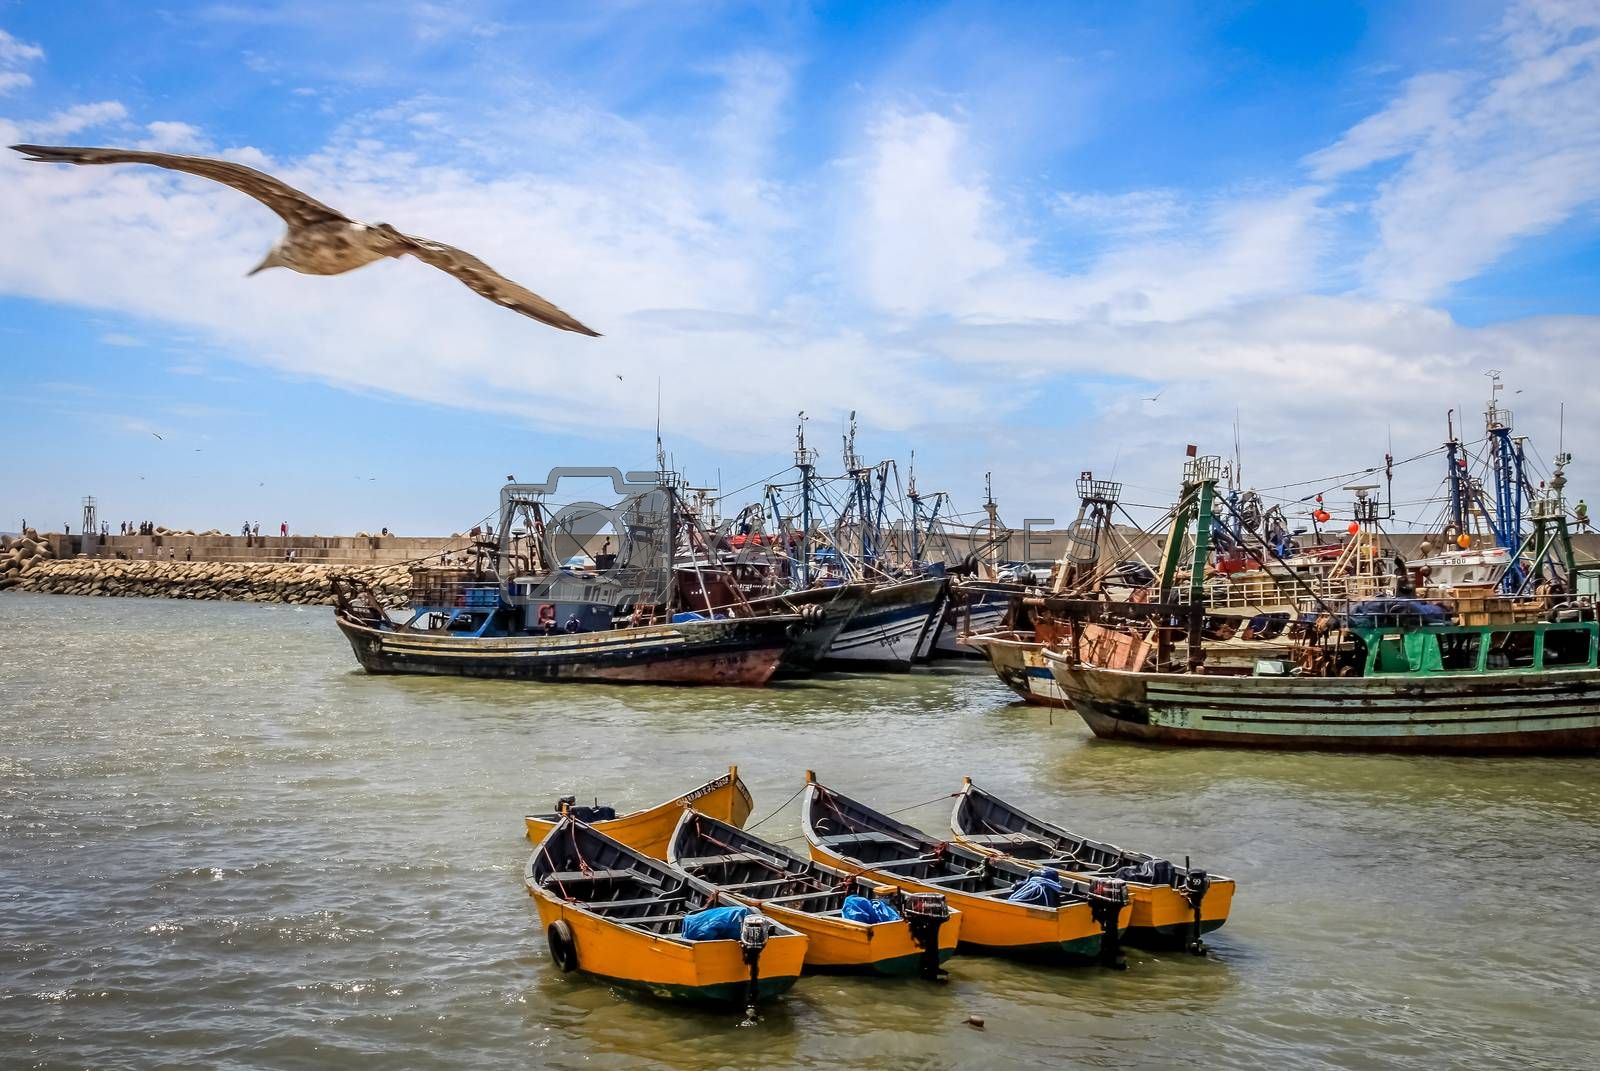 Boats in the old port in the city Essaouira, Morocco